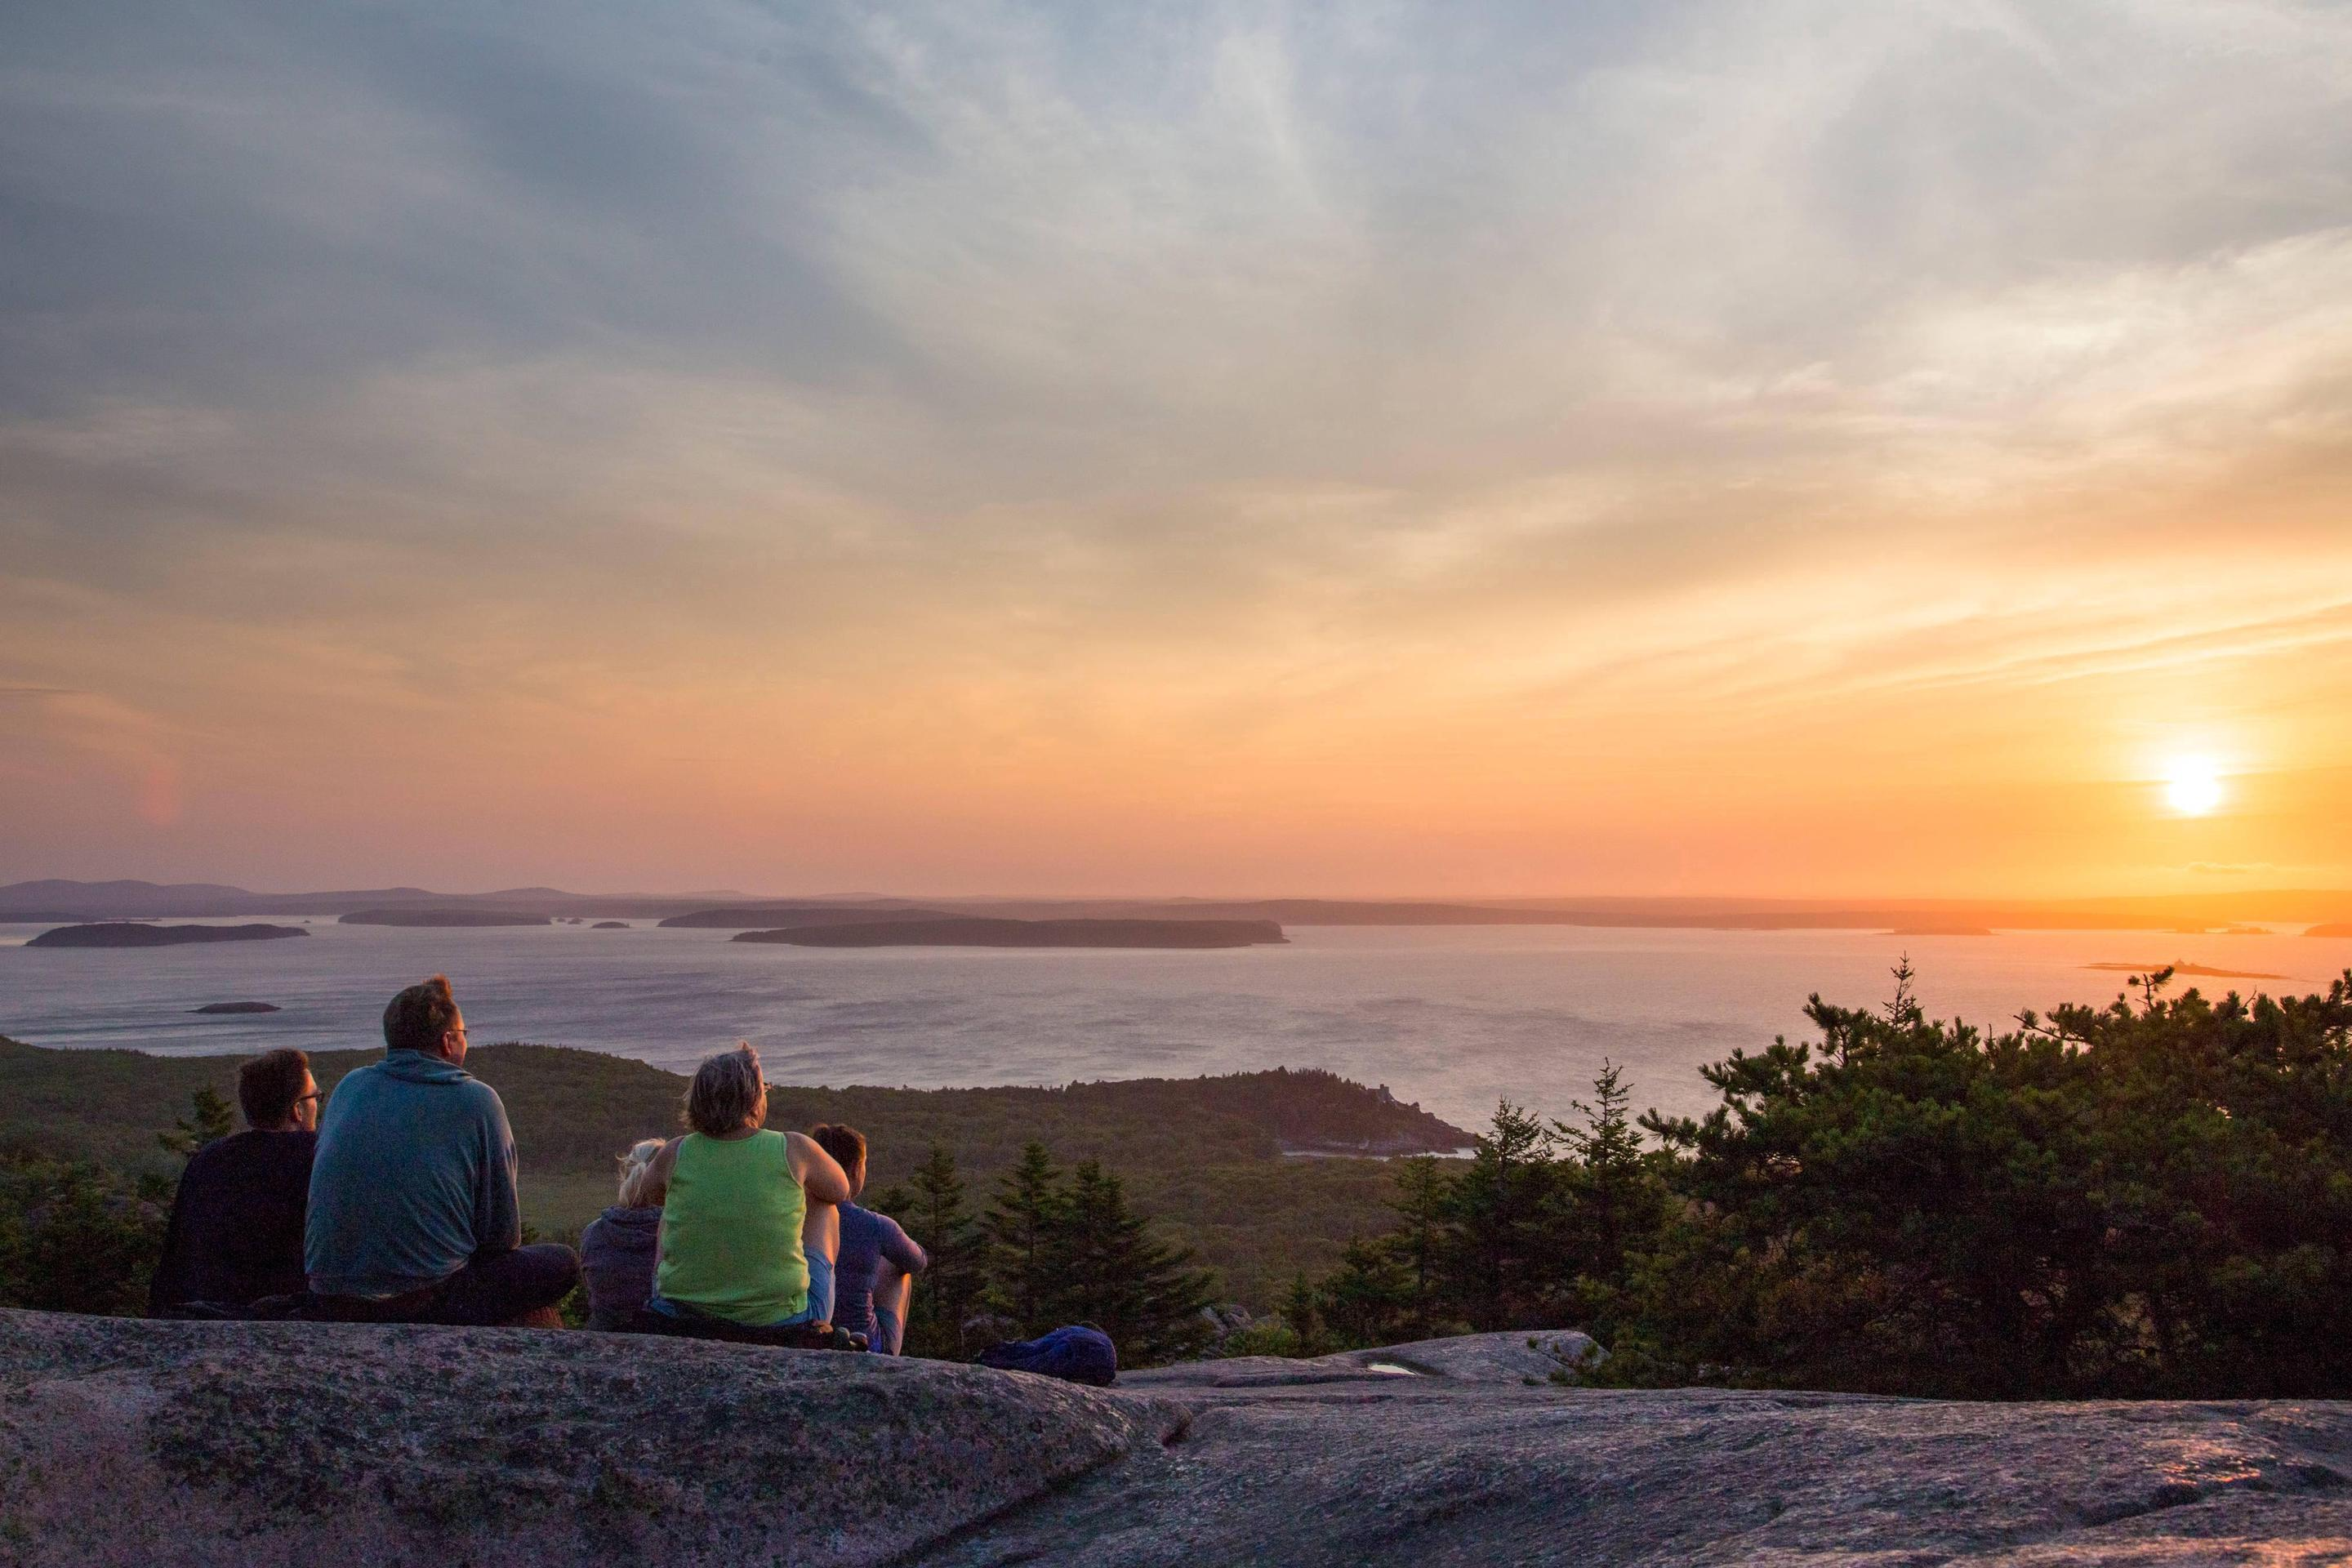 Group of people seated on rock mountain top watches sunrise in distanceSunrise on Cadillac Mountain